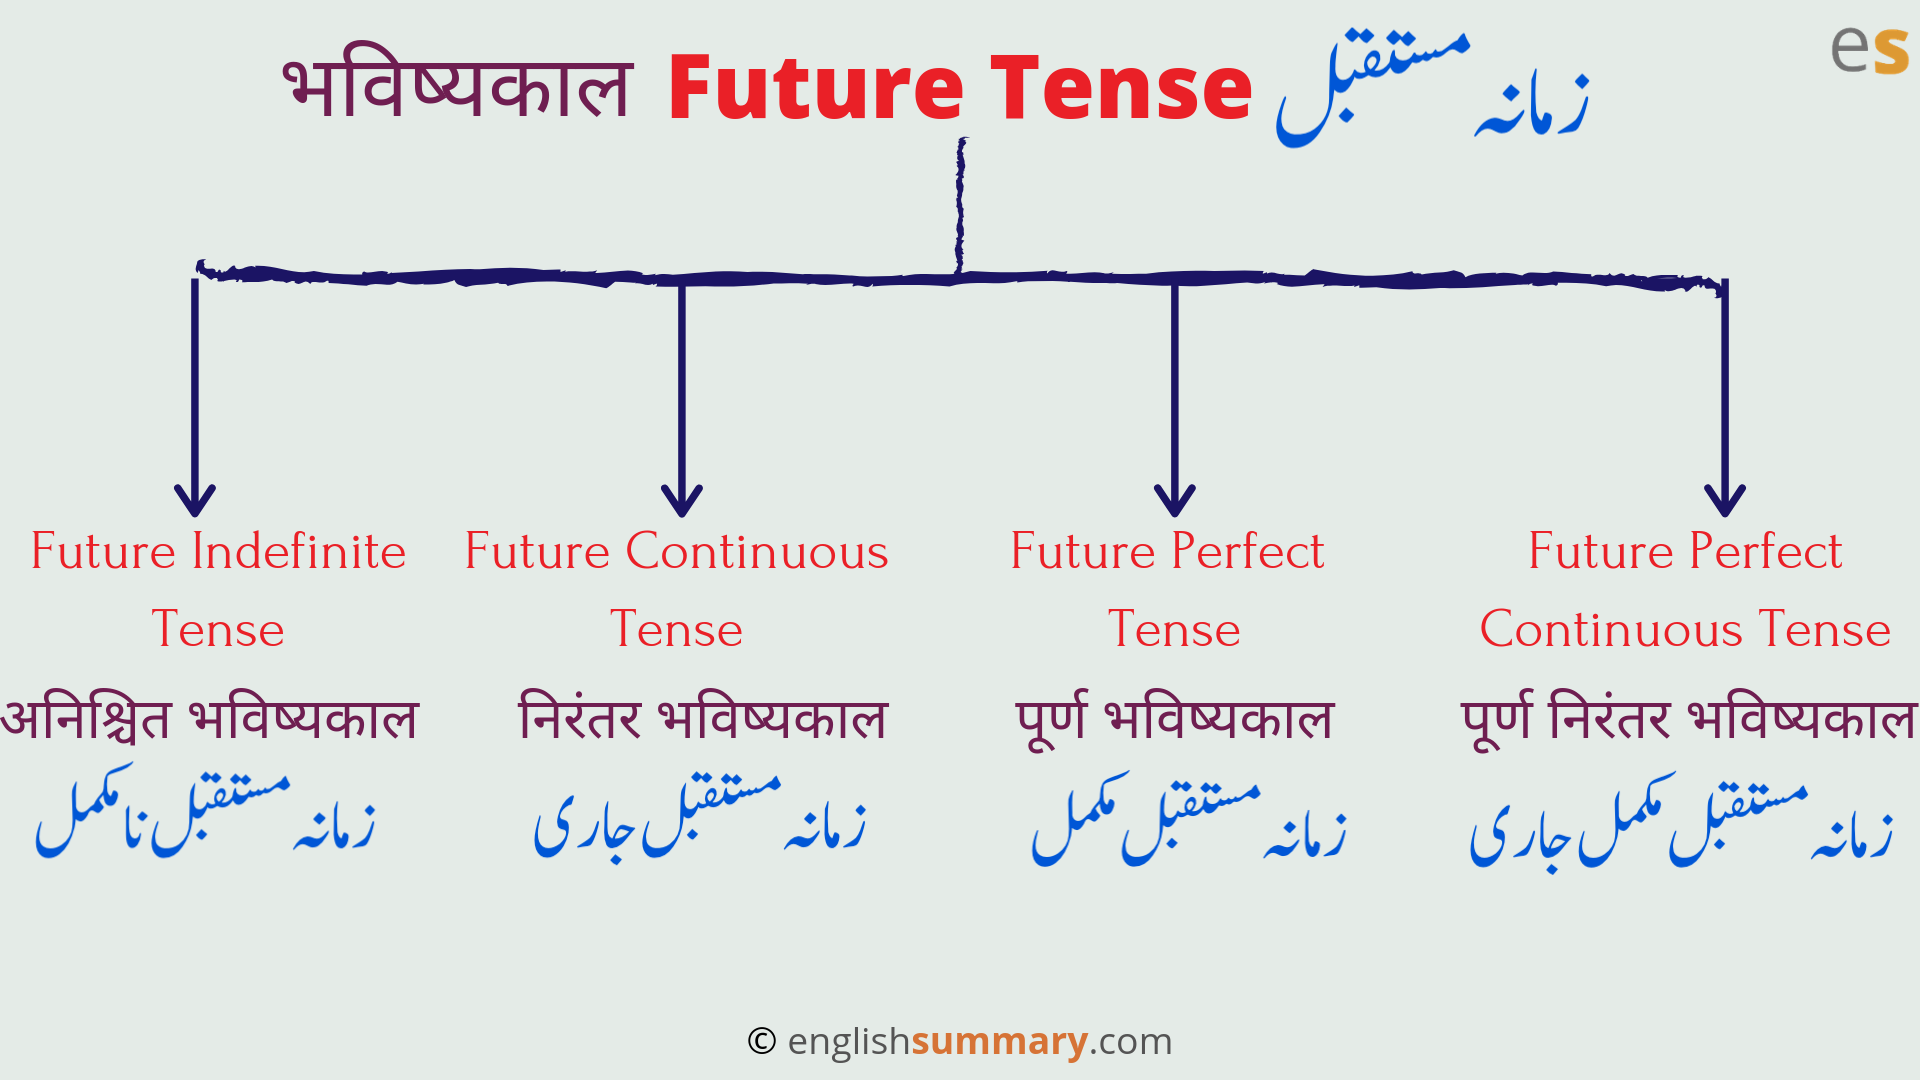 Future Tense Is Divided Into Four Types